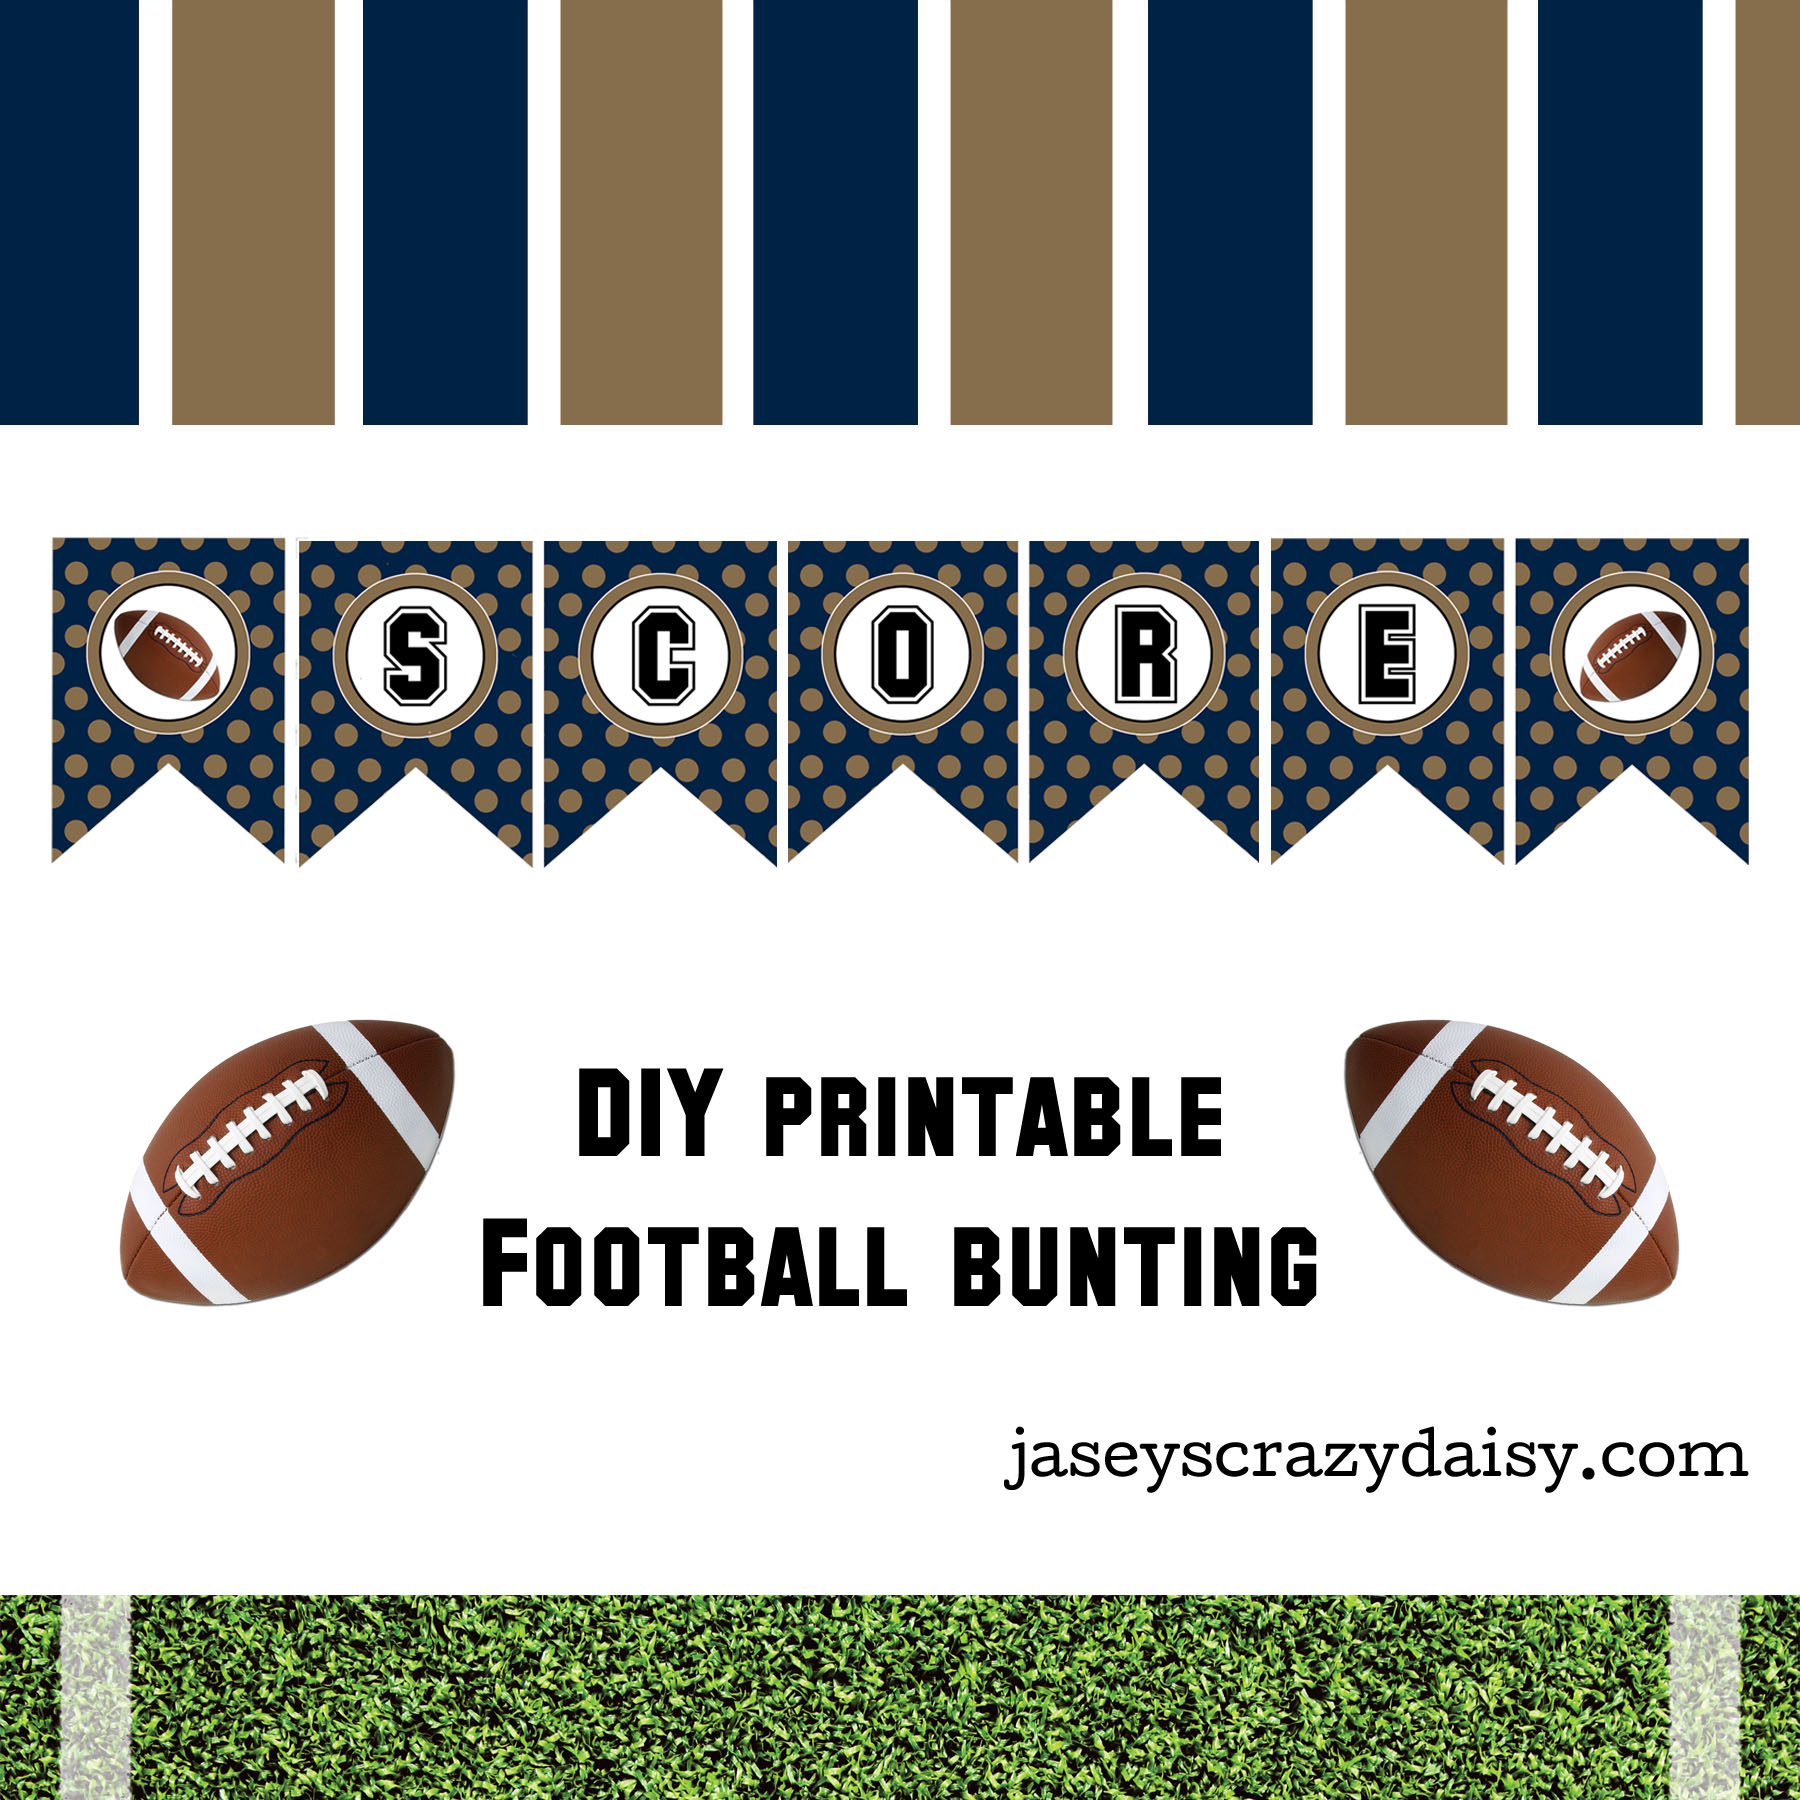 graphic about Printable Football Pictures named Do-it-yourself Printable Rating Military services and Gold Soccer Bunting- Instantaneous Obtain - Jaseys Nuts Daisy